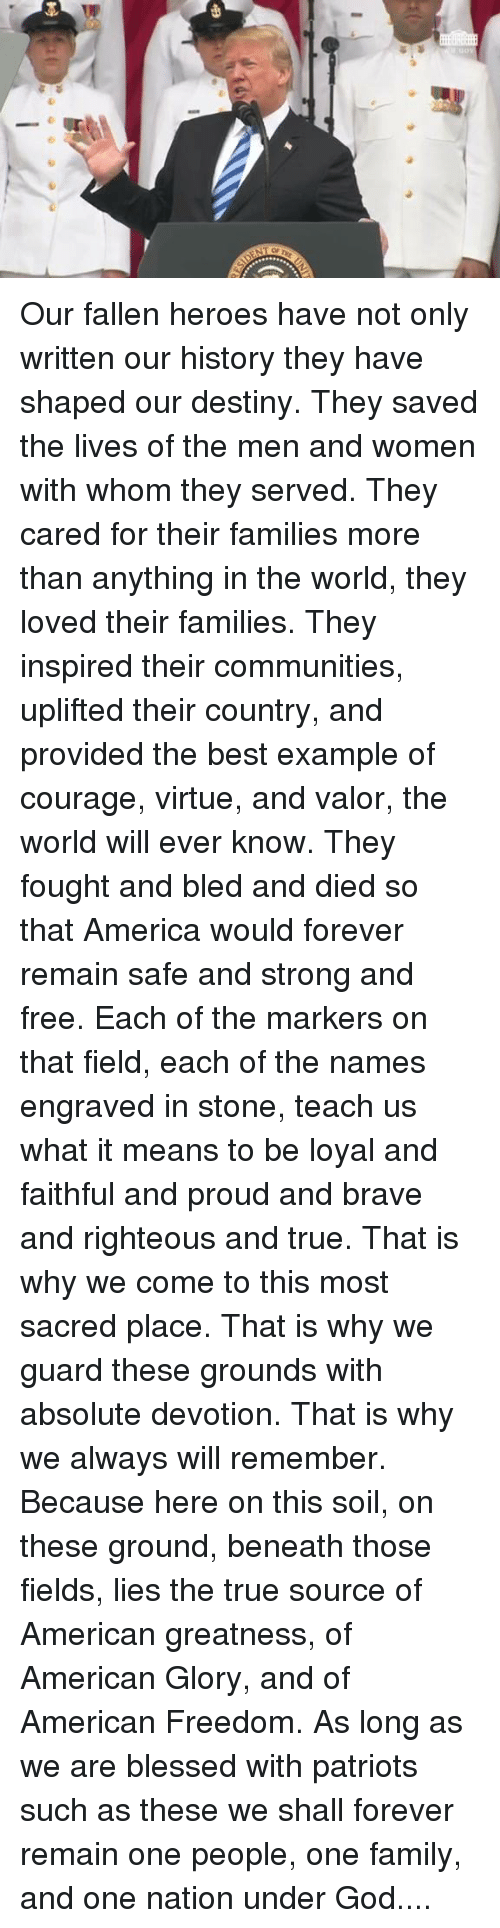 America, Blessed, and Destiny: Our fallen heroes have not only written our history they have shaped our destiny. They saved the lives of the men and women with whom they served. They cared for their families more than anything in the world, they loved their families. They inspired their communities, uplifted their country, and provided the best example of courage, virtue, and valor, the world will ever know. They fought and bled and died so that America would forever remain safe and strong and free. Each of the markers on that field, each of the names engraved in stone, teach us what it means to be loyal and faithful and proud and brave and righteous and true. That is why we come to this most sacred place. That is why we guard these grounds with absolute devotion. That is why we always will remember. Because here on this soil, on these ground, beneath those fields, lies the true source of American greatness, of American Glory, and of American Freedom. As long as we are blessed with patriots such as these we shall forever remain one people, one family, and one nation under God....